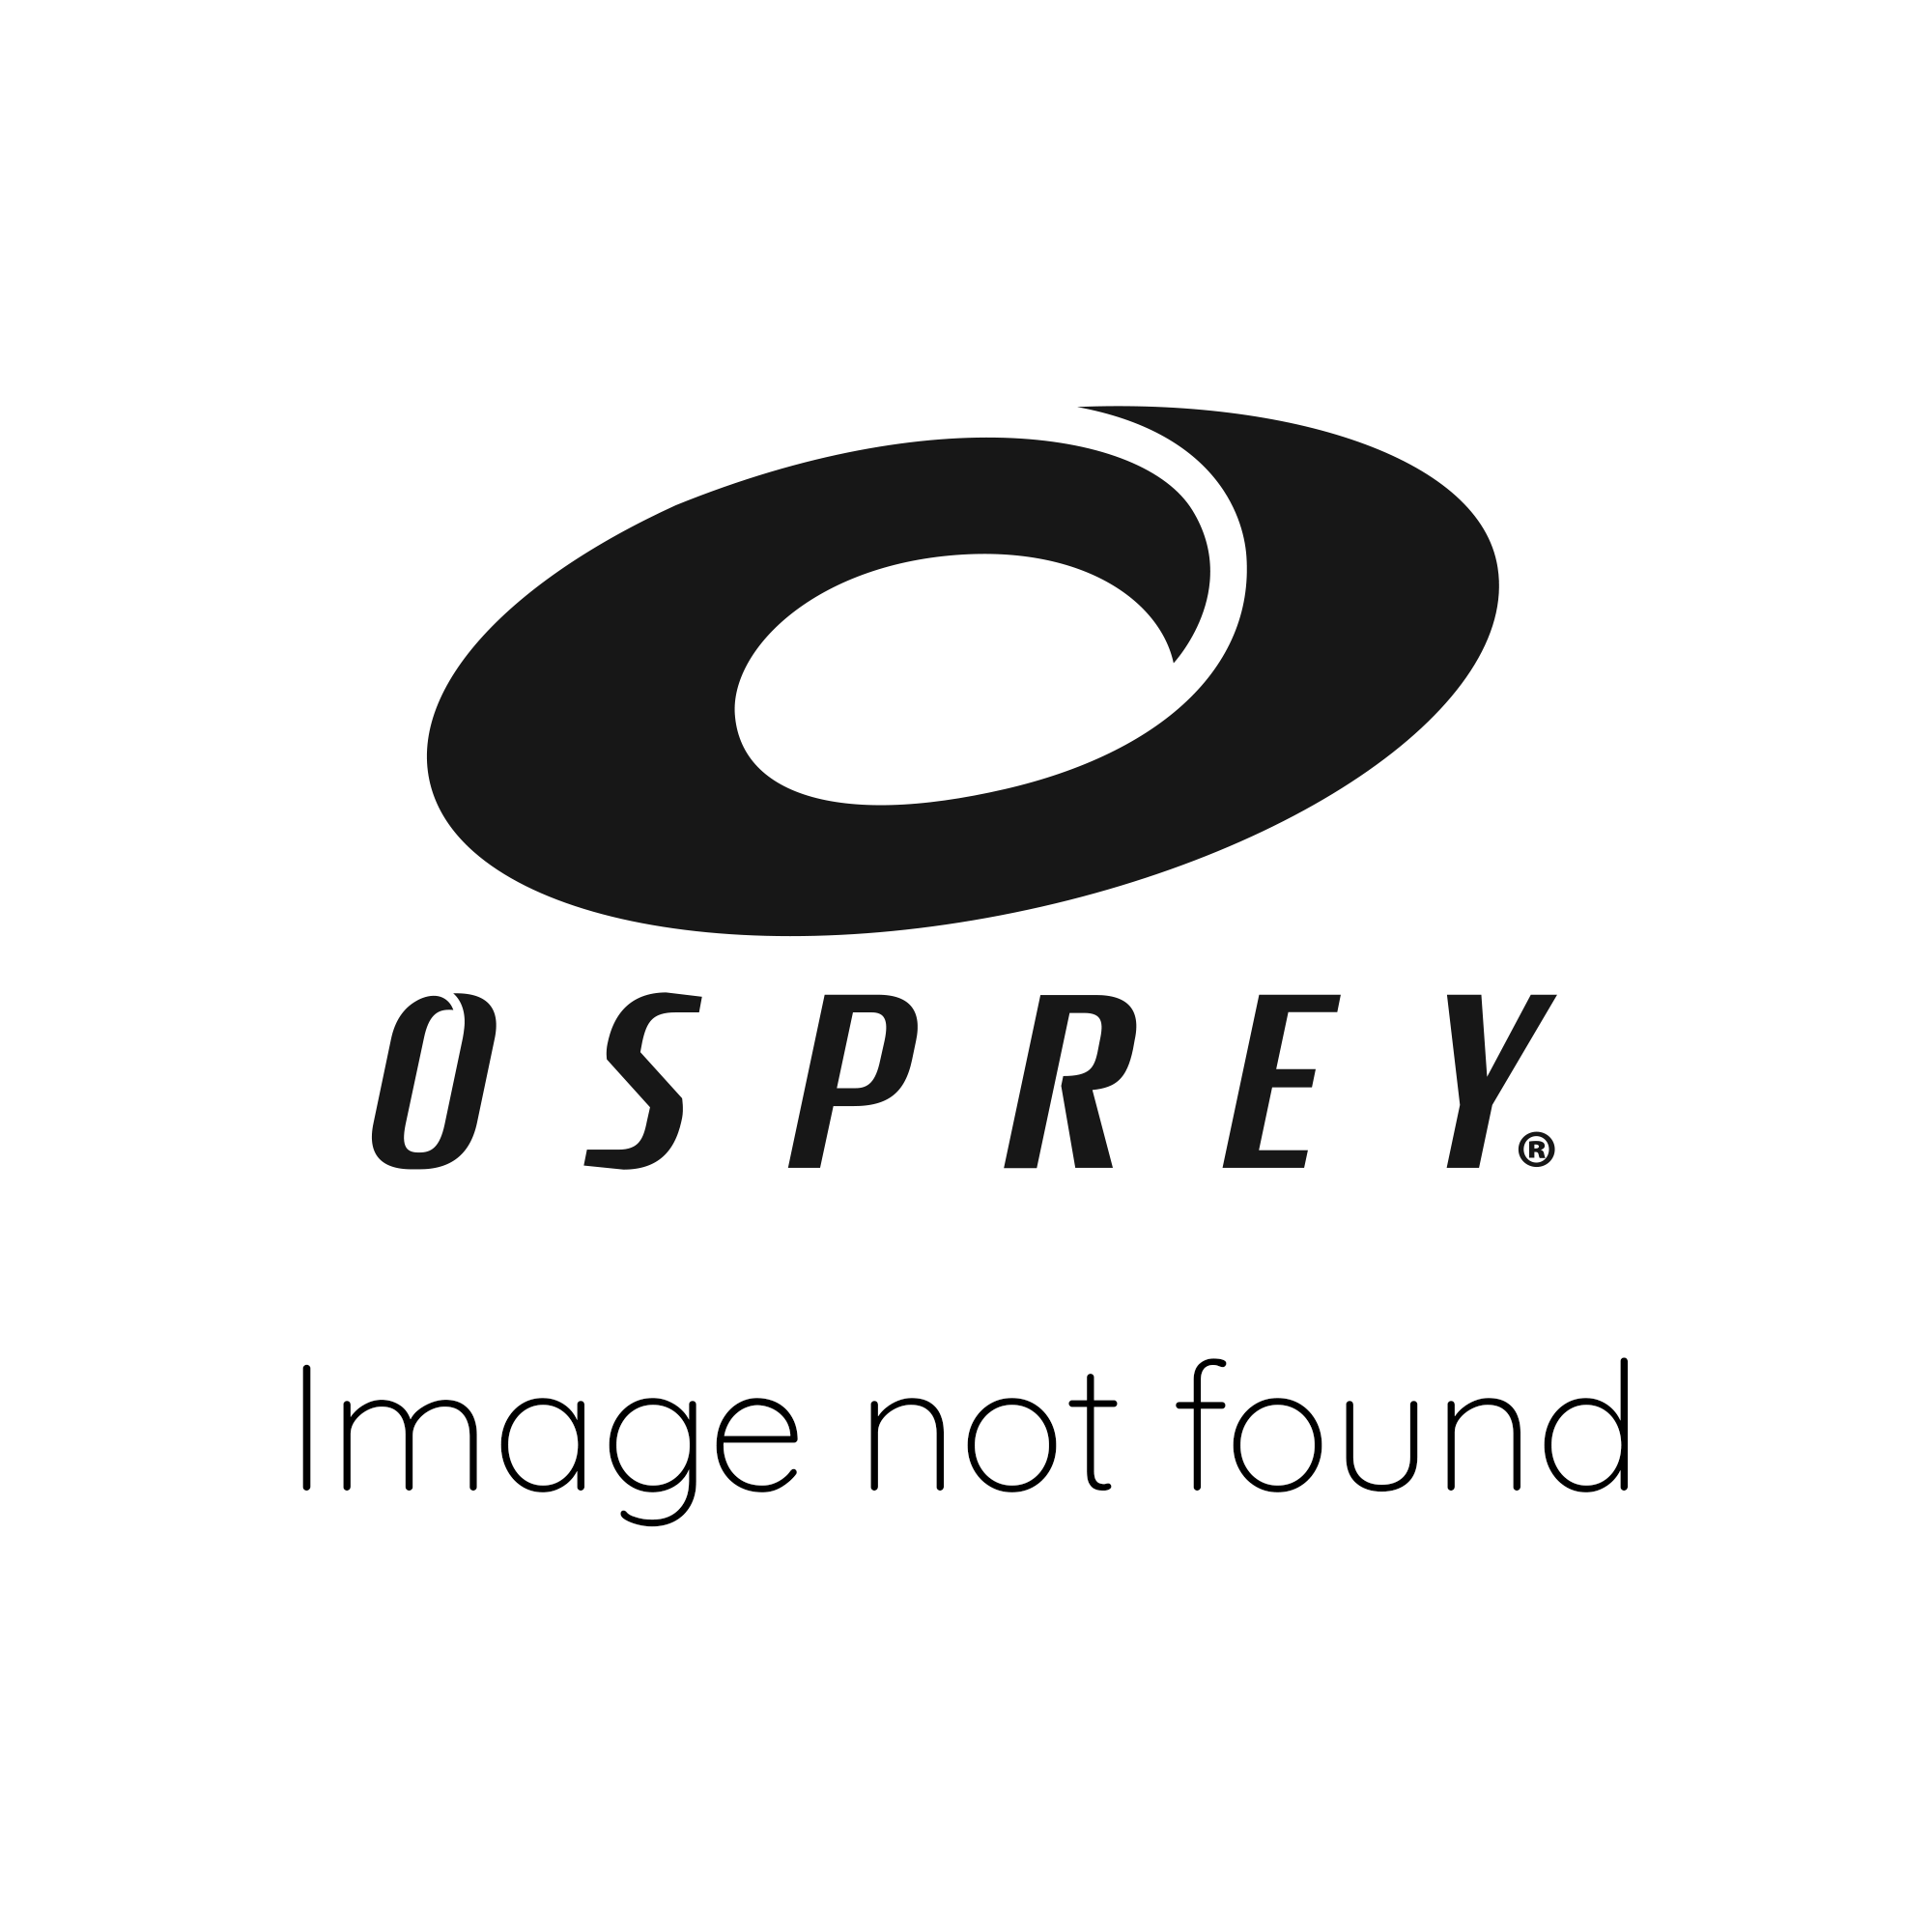 Osprey Mens Ossel Full Length Sailing Wetsuit